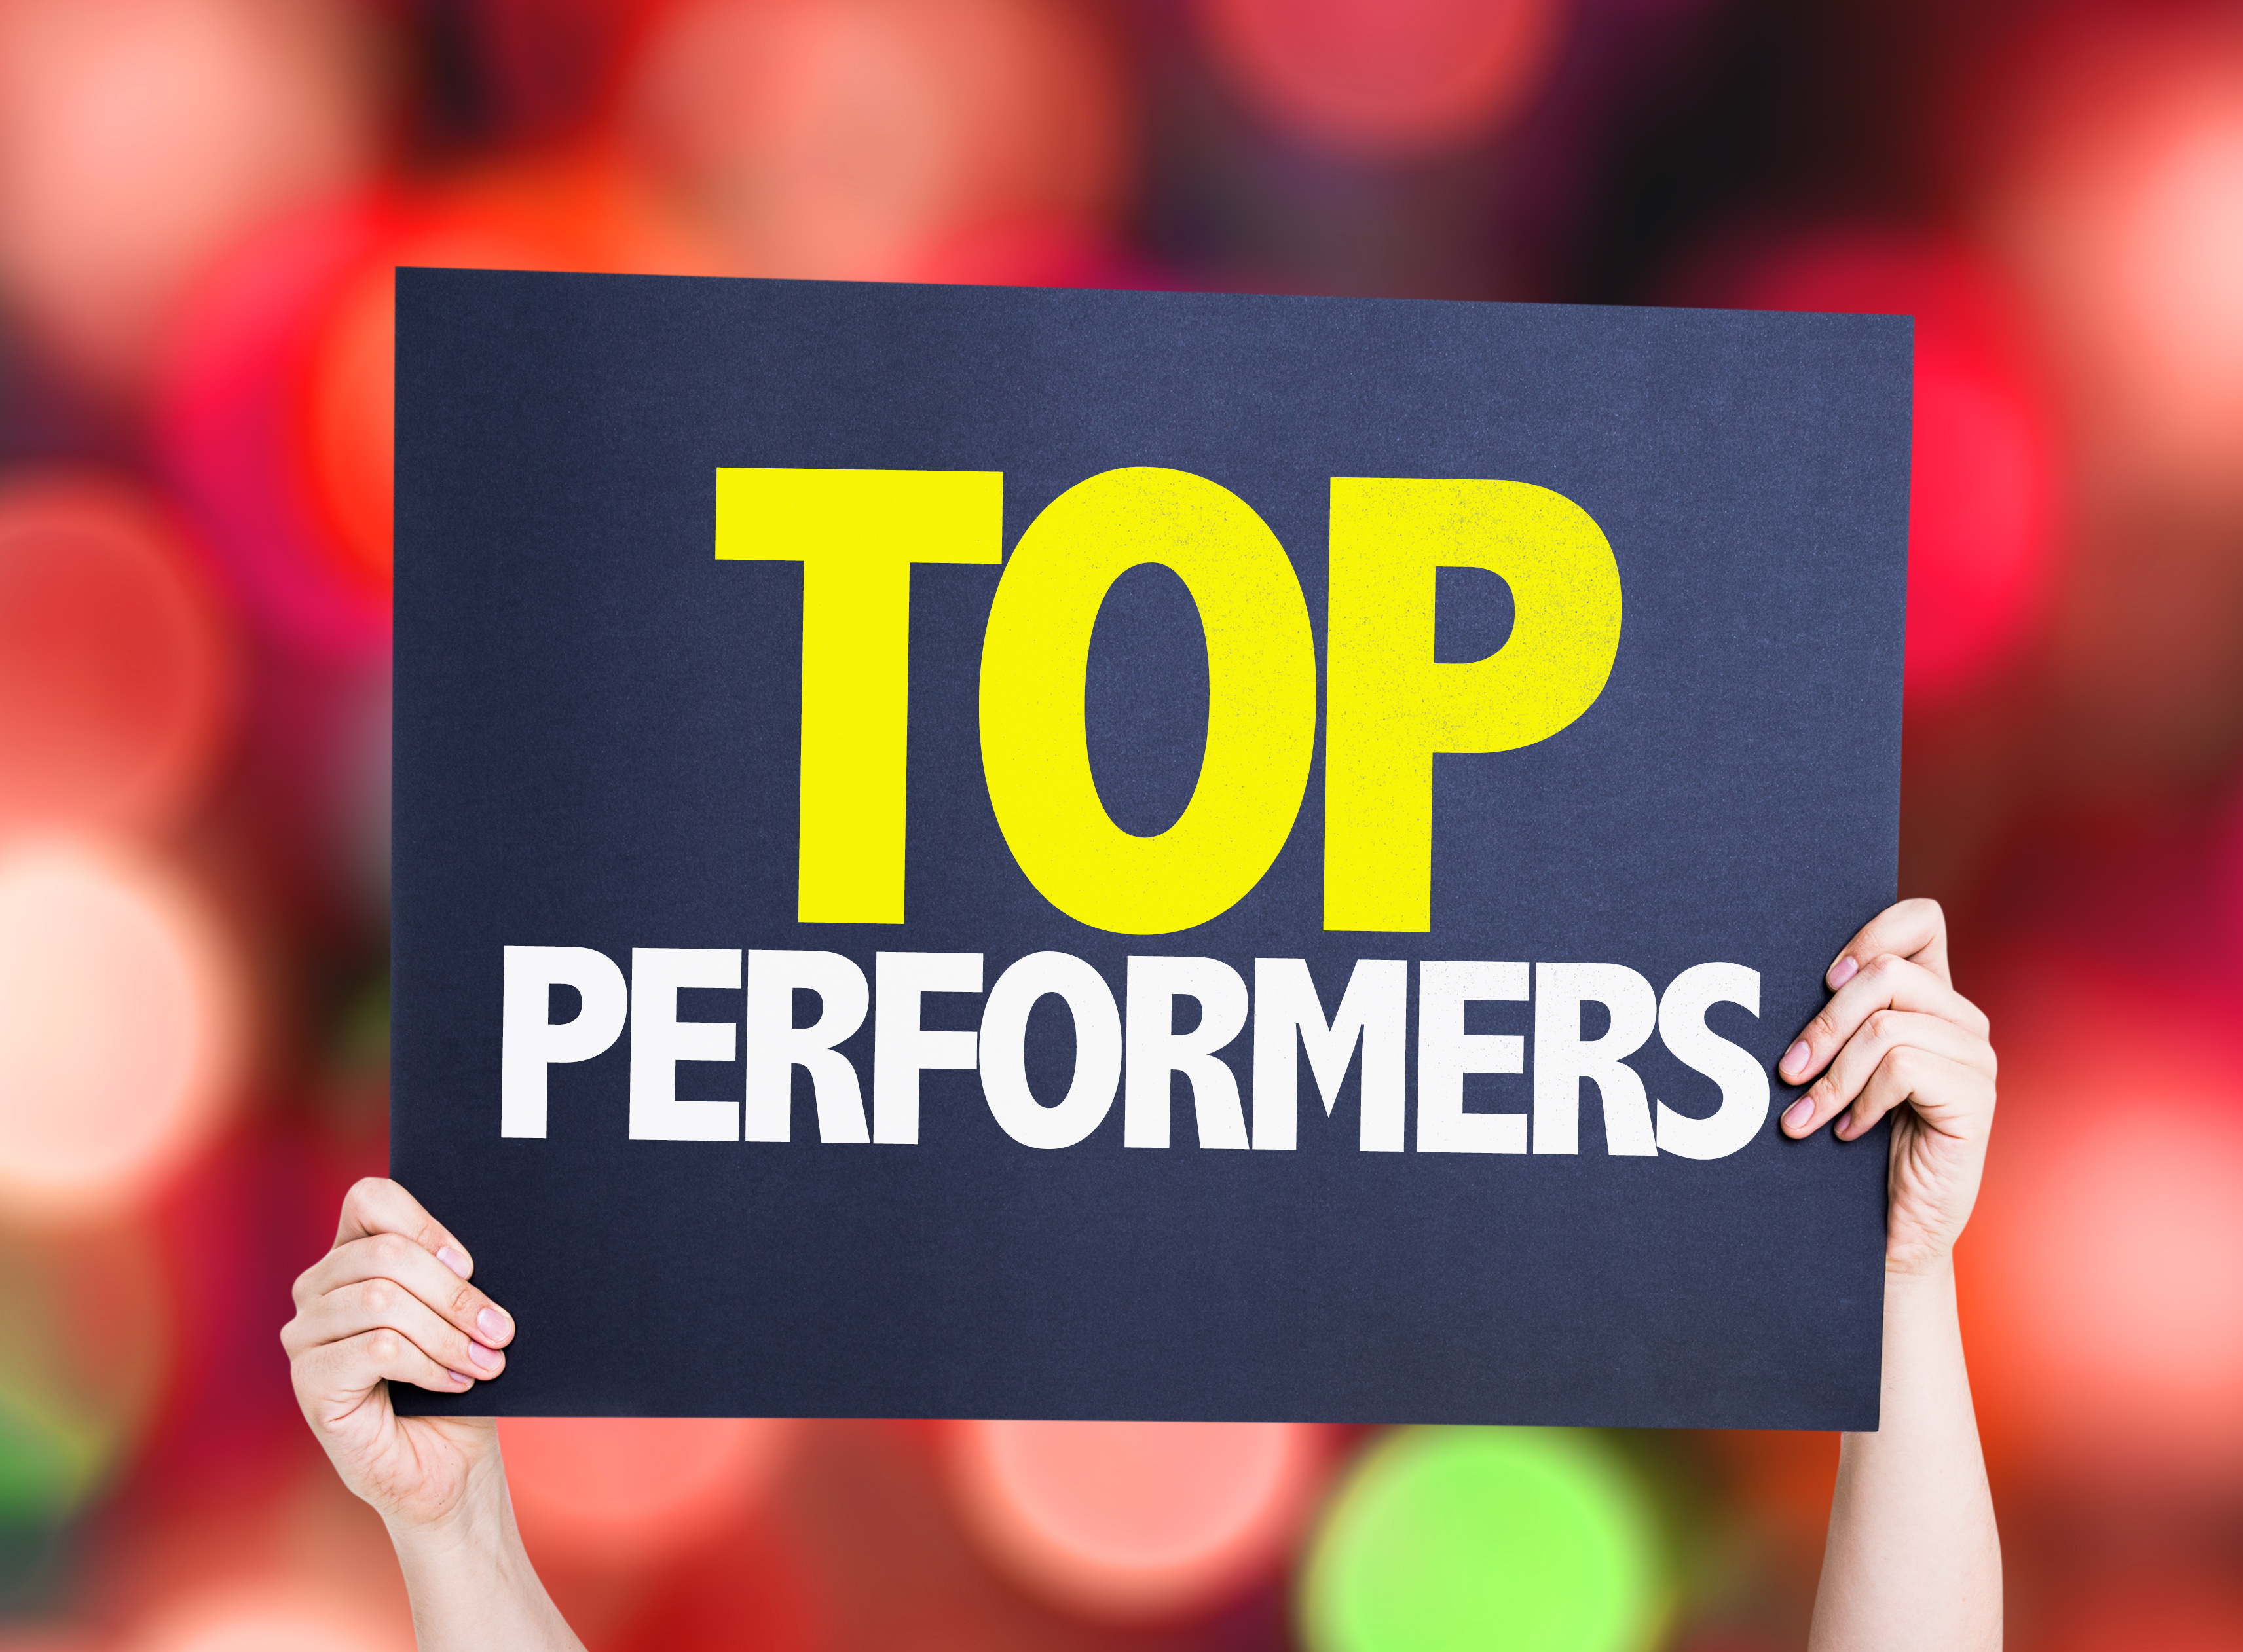 Top Performers placard with bokeh background